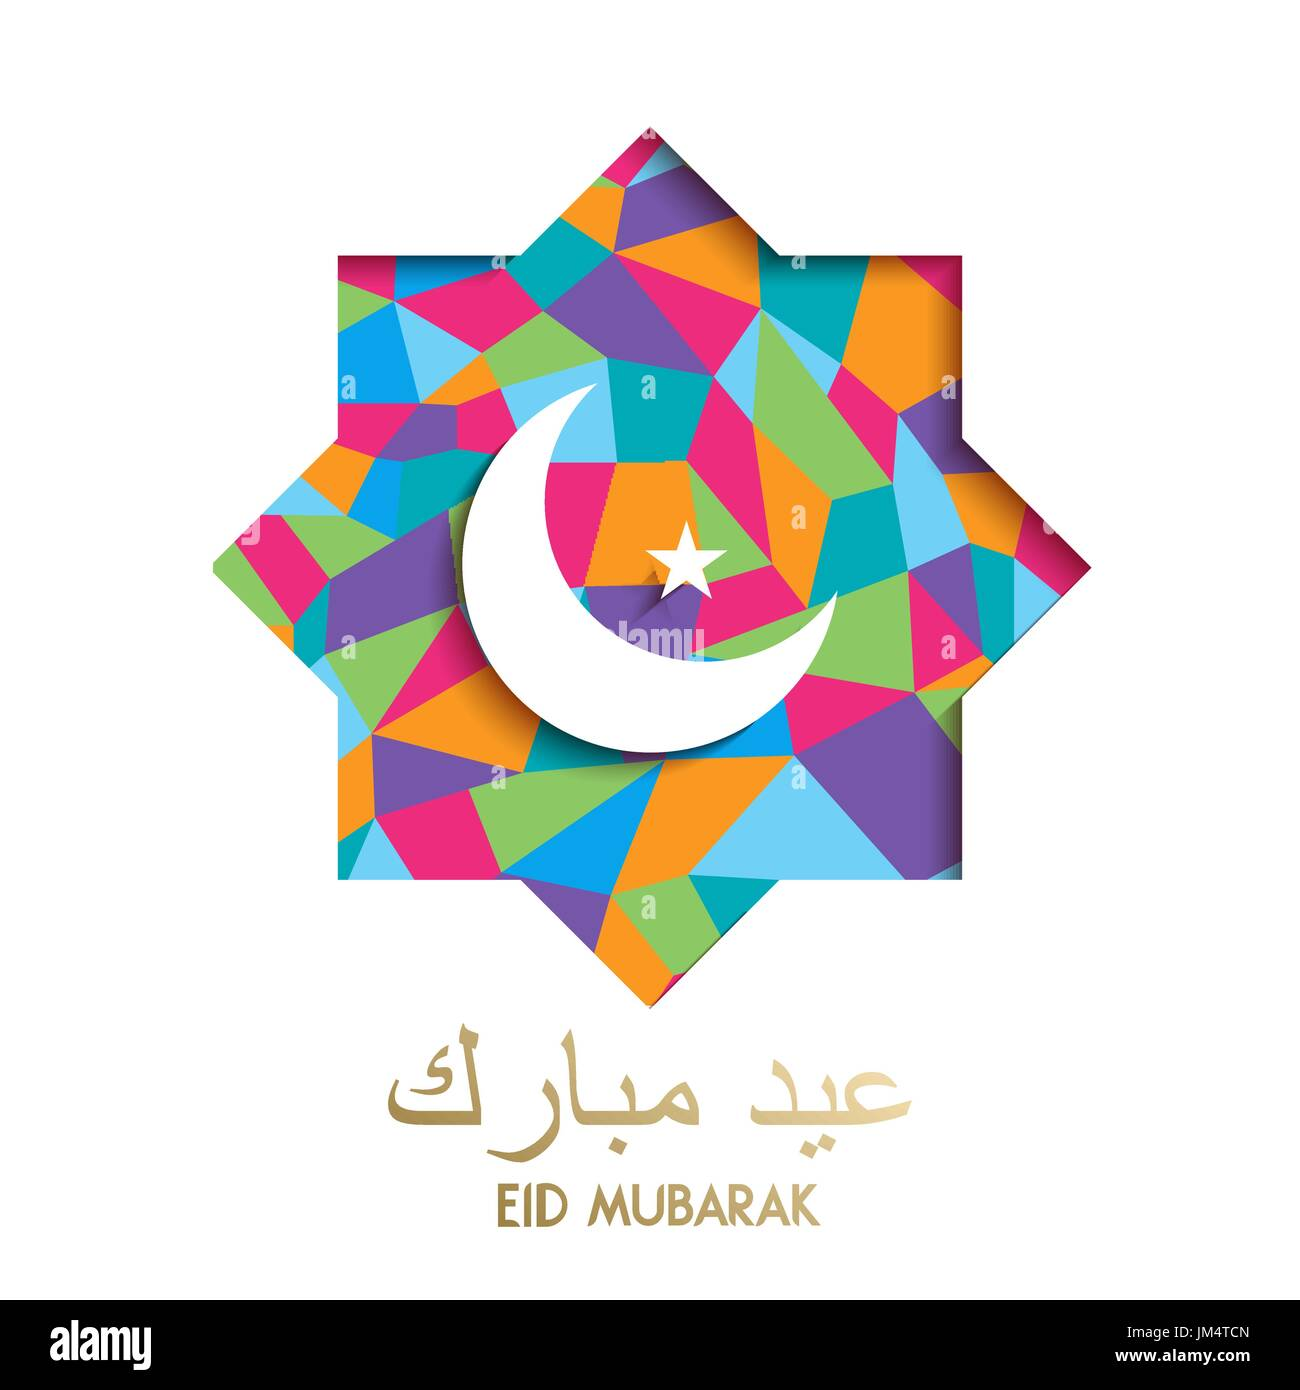 Eid mubarak paper cut art greeting card for muslim holiday season eid mubarak paper cut art greeting card for muslim holiday season moon and star in kristyandbryce Image collections